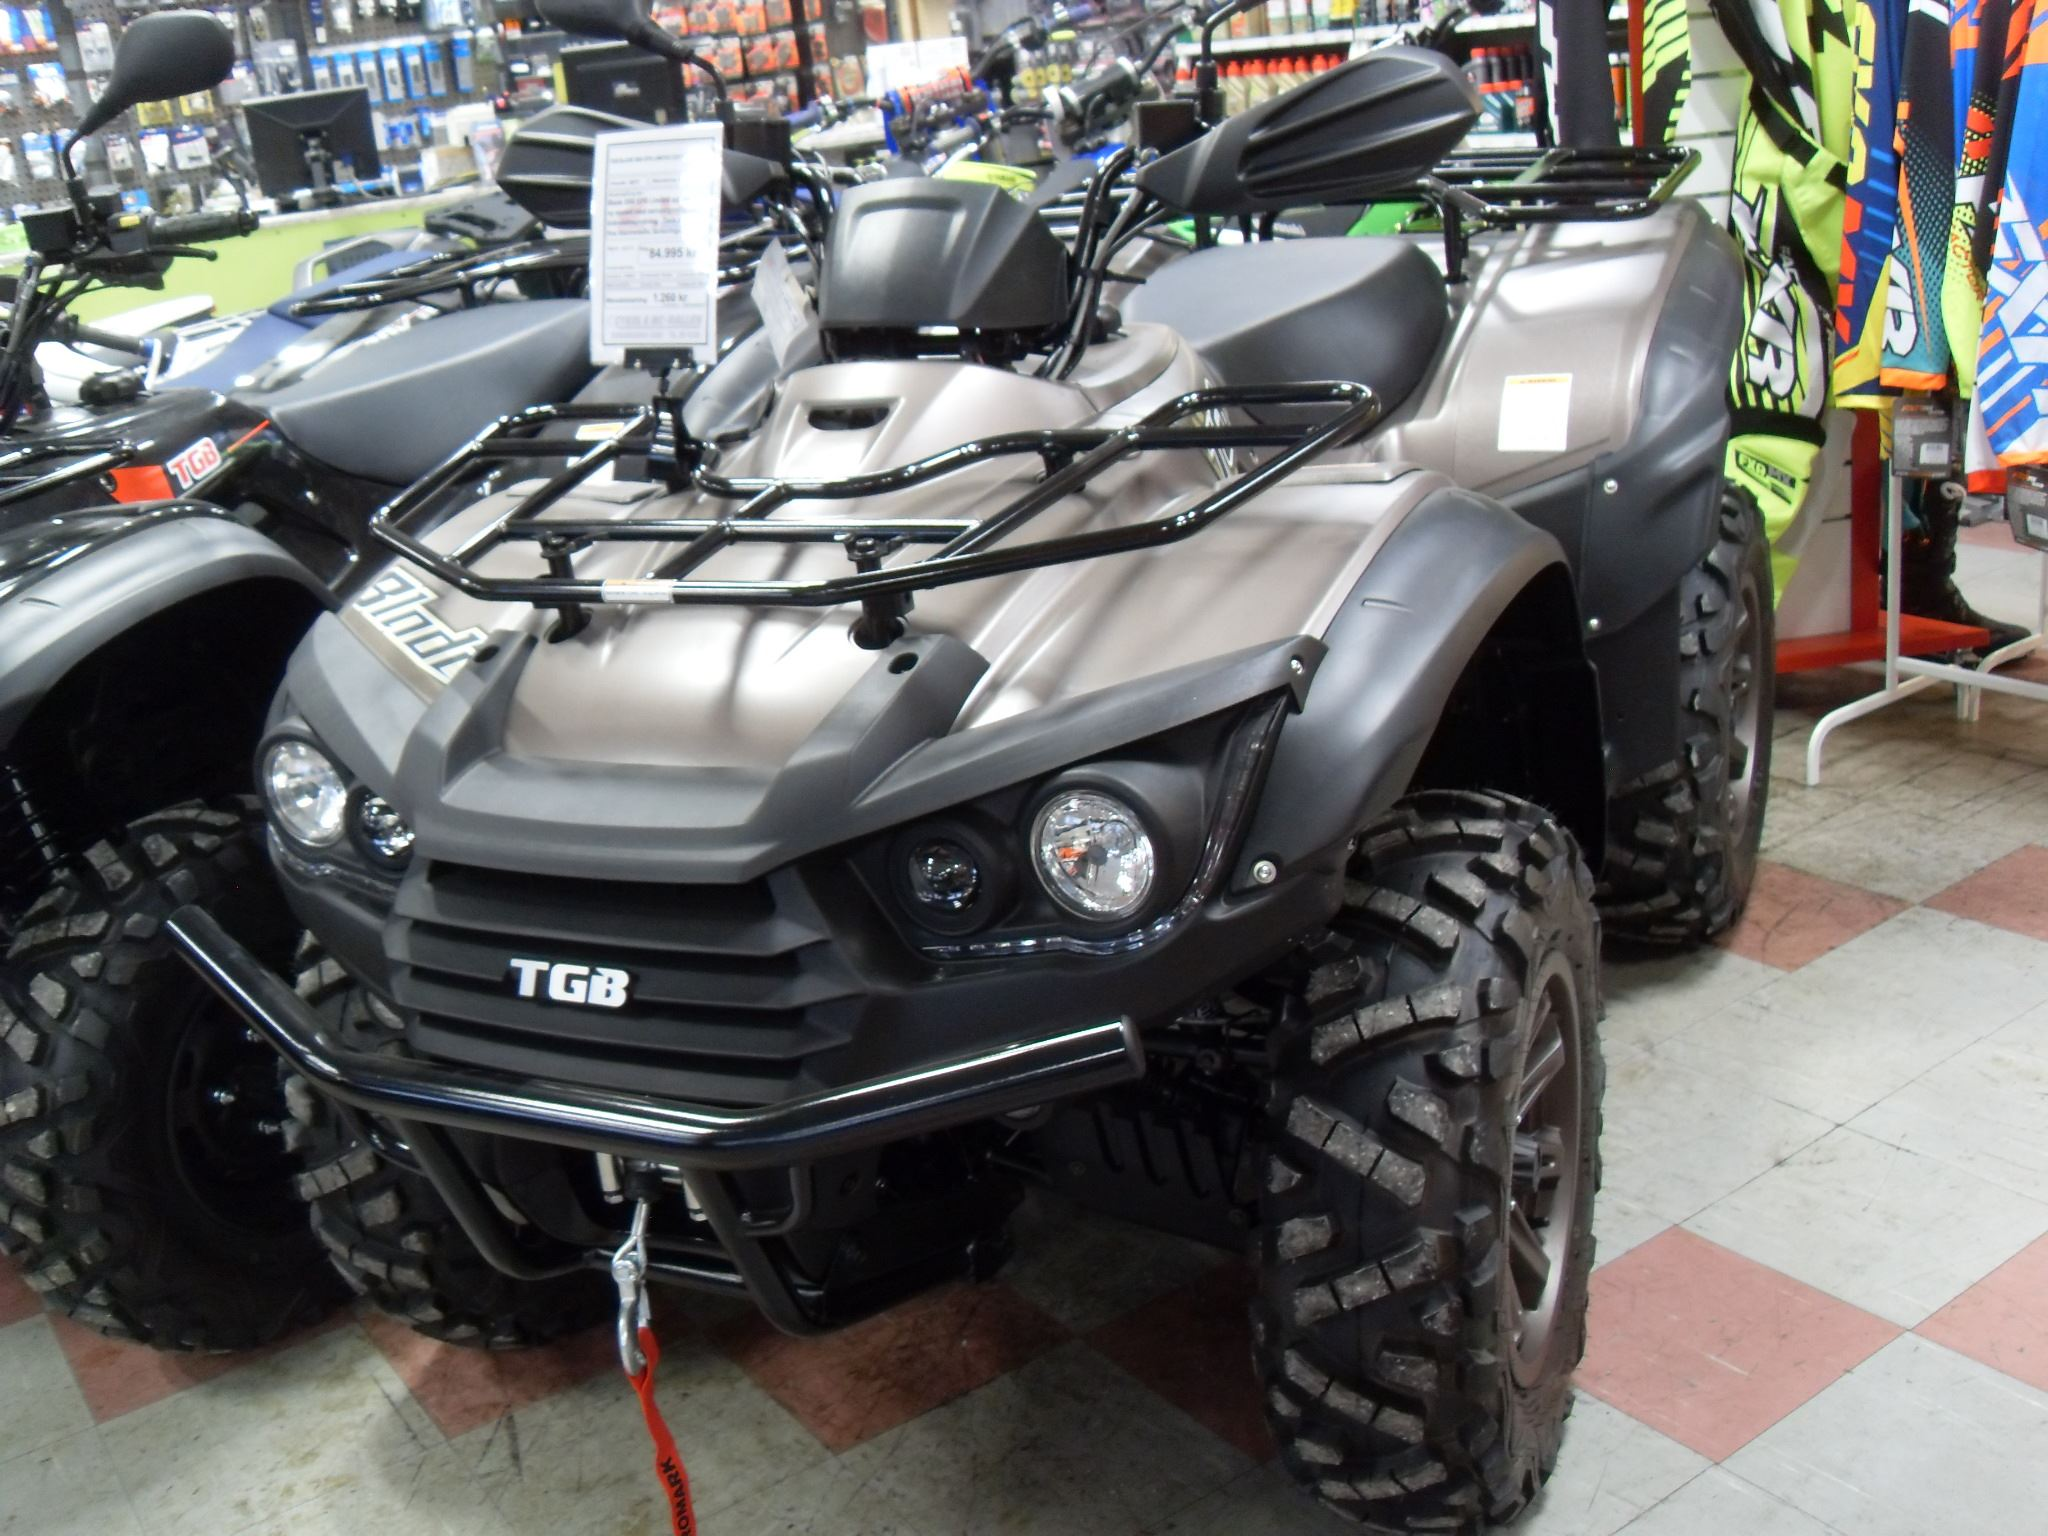 Klass D - TGB 550 (4-wheeler, allowed to drive with car driving license)